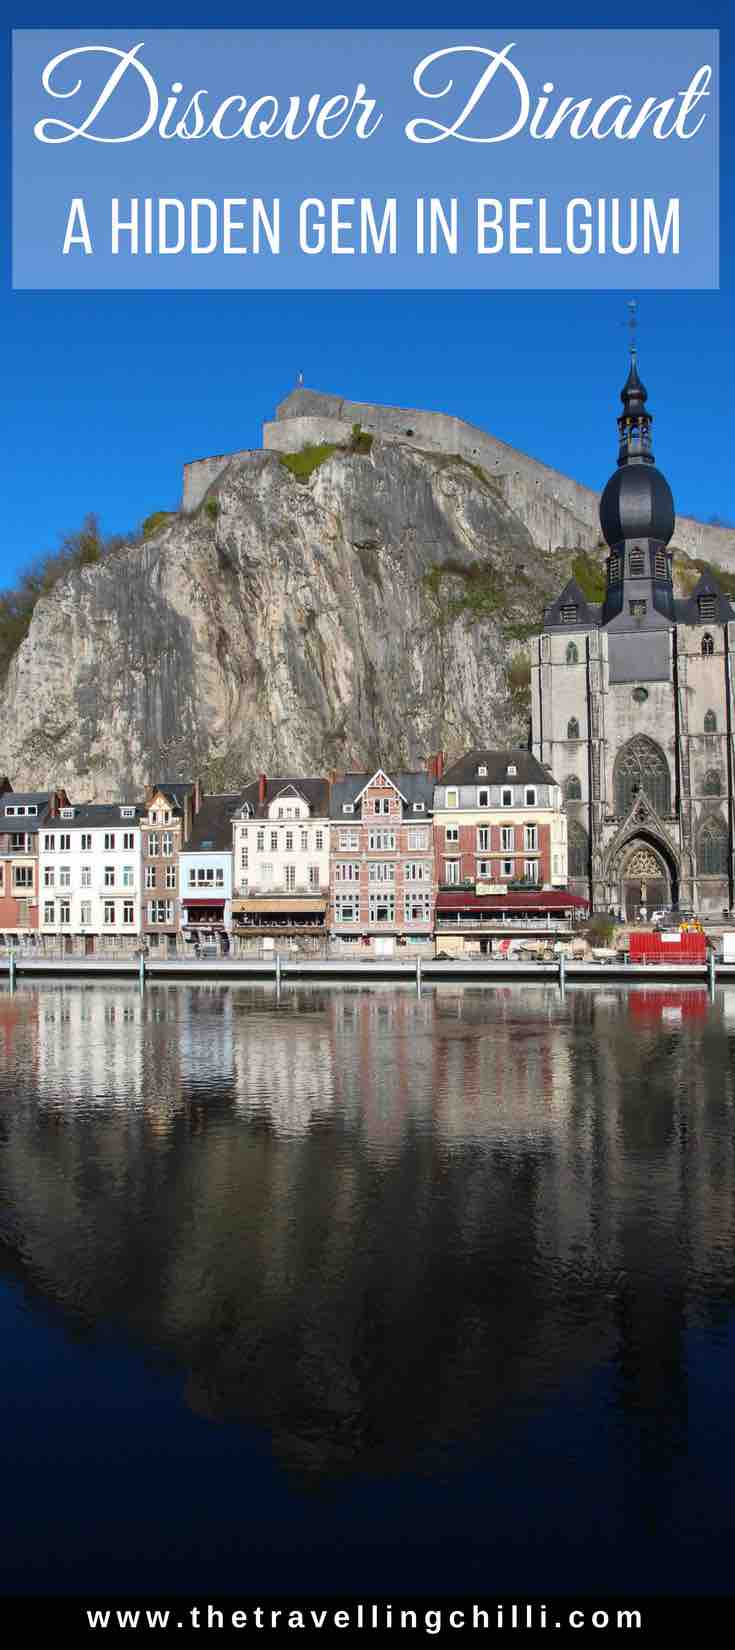 Discover Dinant a hidden gem in Belgium